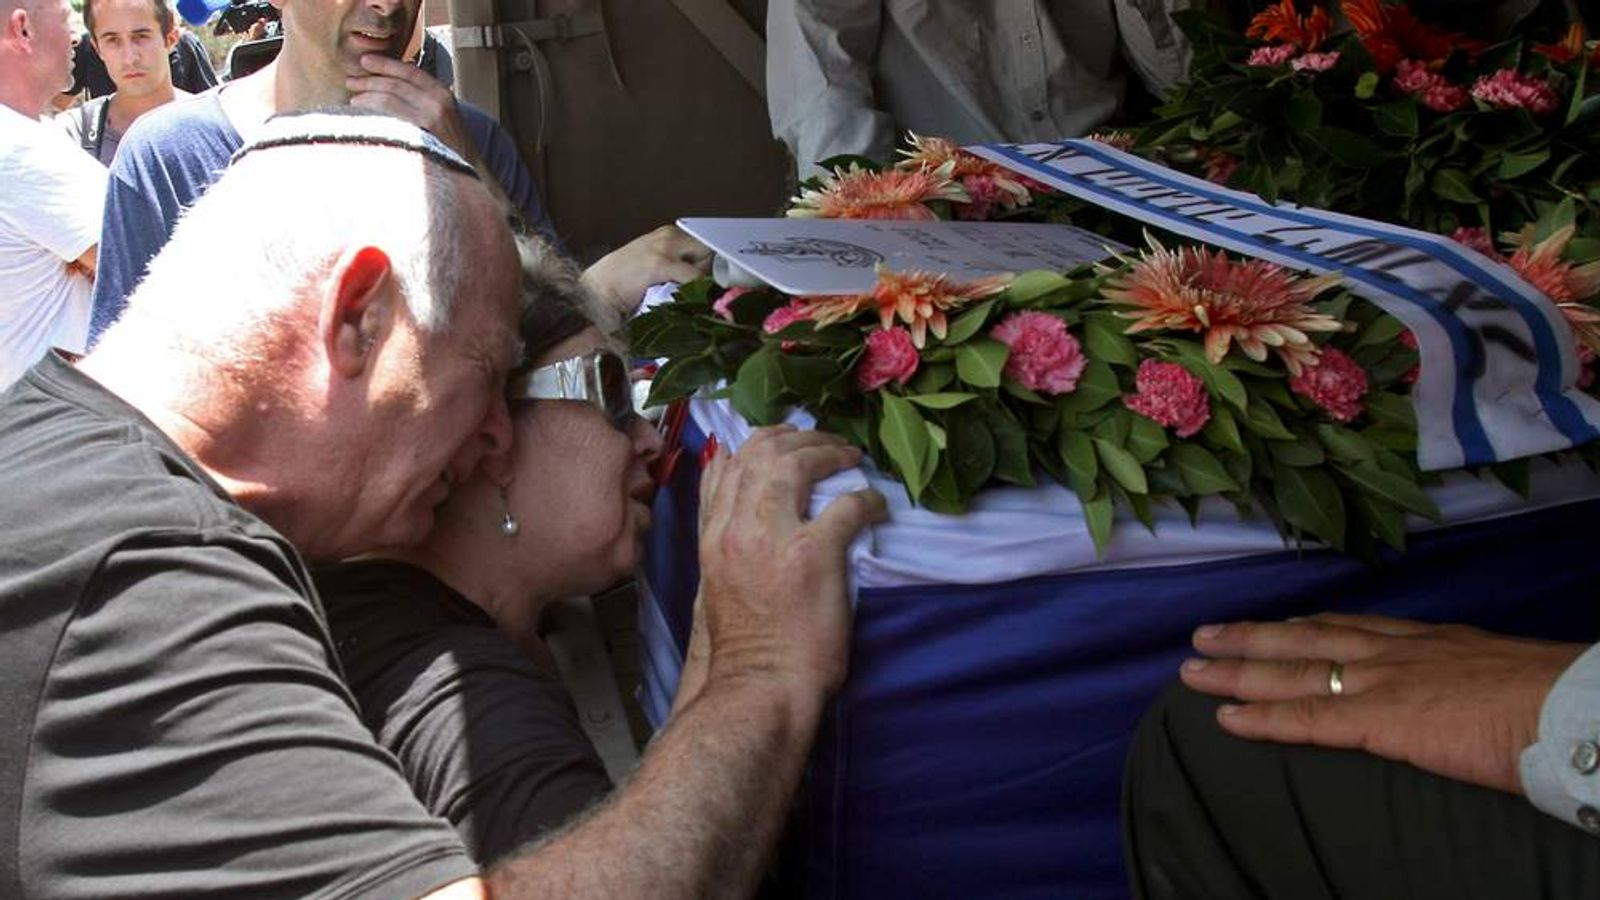 ISRAEL-PALESTINIAN-GAZA-CONFLICT-FUNERAL